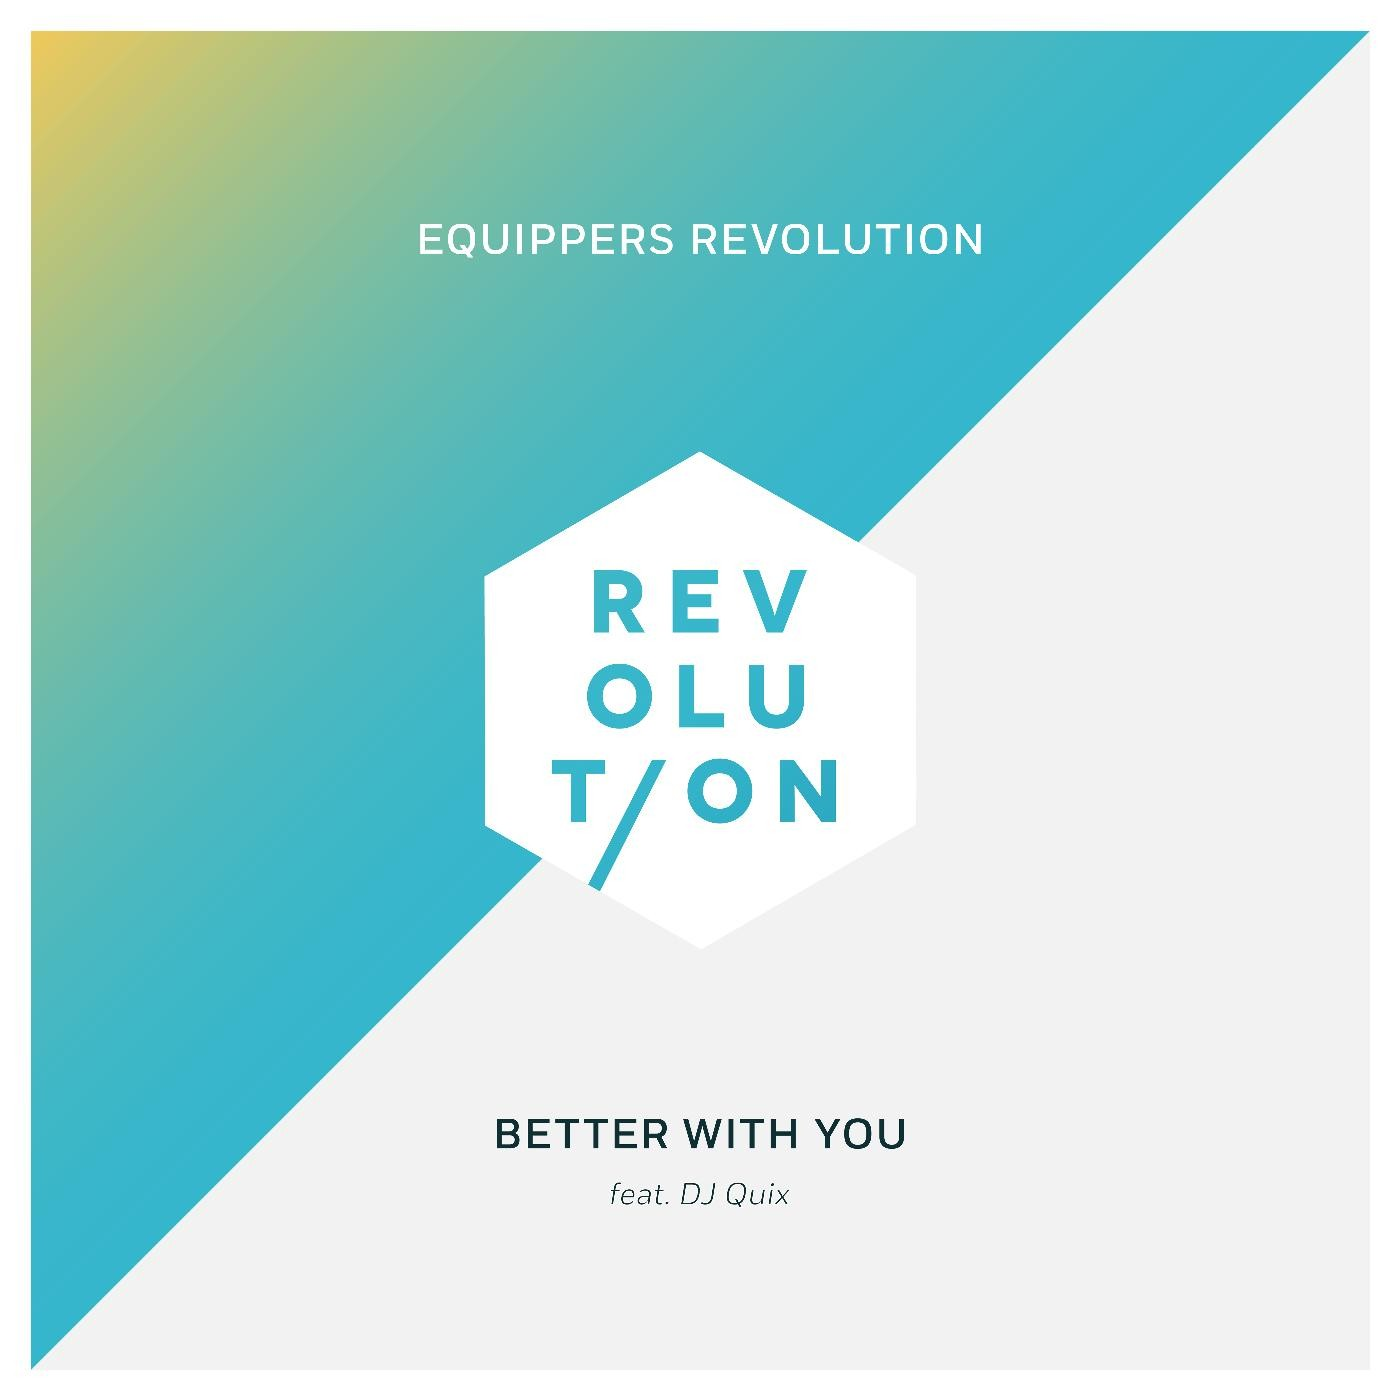 Equippers Revolution - Better With You (ft. DJ Quix)